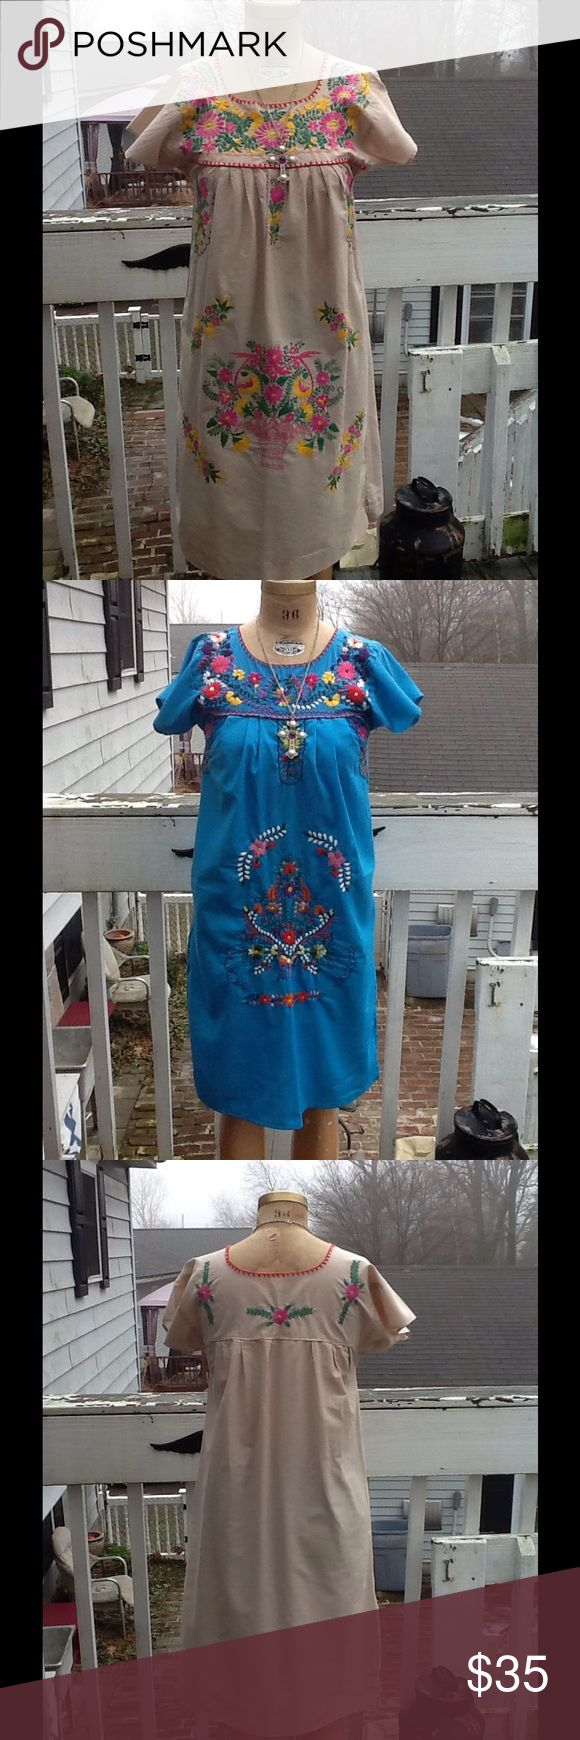 """Bundle of 2 VTG Embroidered MEXICAN Dresses Nice lot of 2 VTG embroidered MEXICAN boho festival dresses,perfect little summer dresses but make beautiful maternity dresses as well,1 is in tan other is in a pretty turquoise blue,beautiful embroidery all hand done,some light staining on tan May come out with some shout in wash..I'm no longer posting condition EUC,MINT,BEAUTIFUL any longer due to too many ppl making up lies in order to return an item..sold as is! Any ?s ask! Measurements: L:38""""…"""